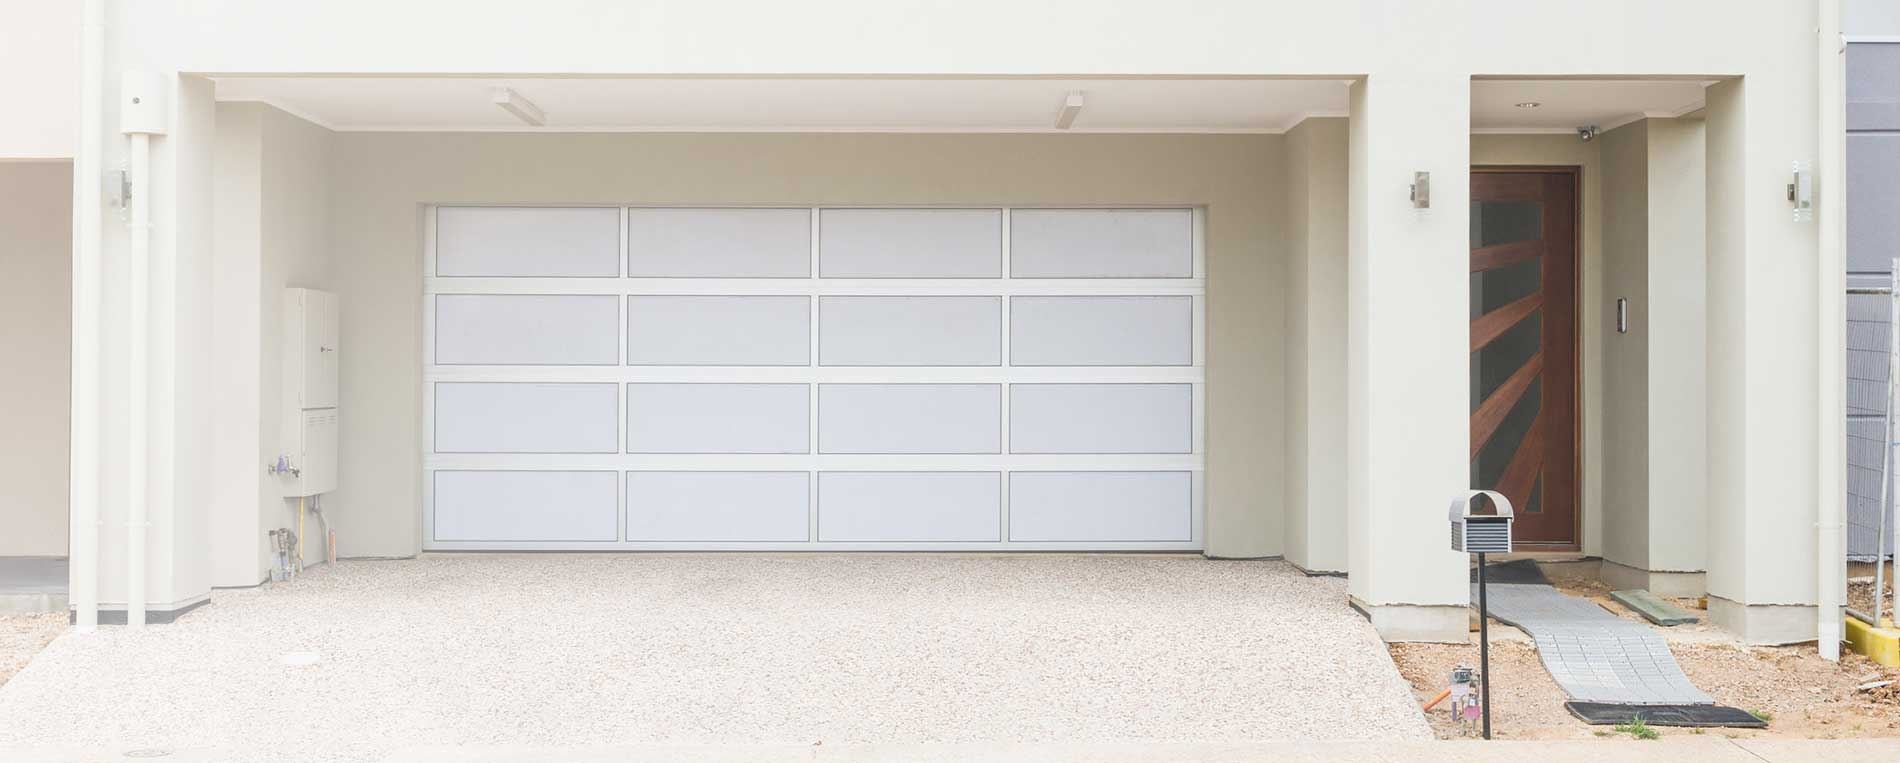 Garage Door Repair Brooklyn, NY